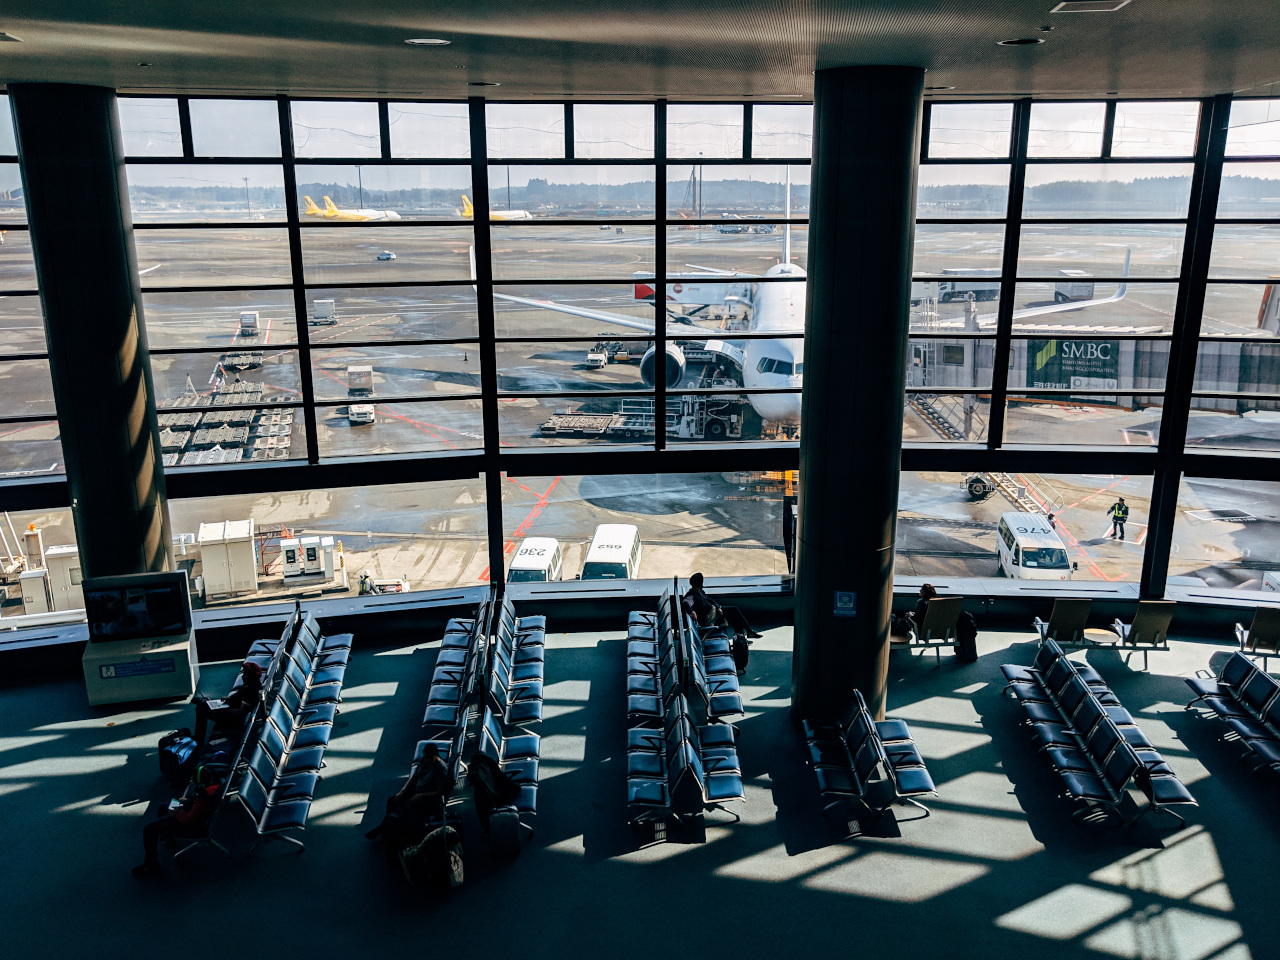 Talking to someone new is one of the best things to do at the airport. Discover 35 things to do whilst waiting for your flight from this article